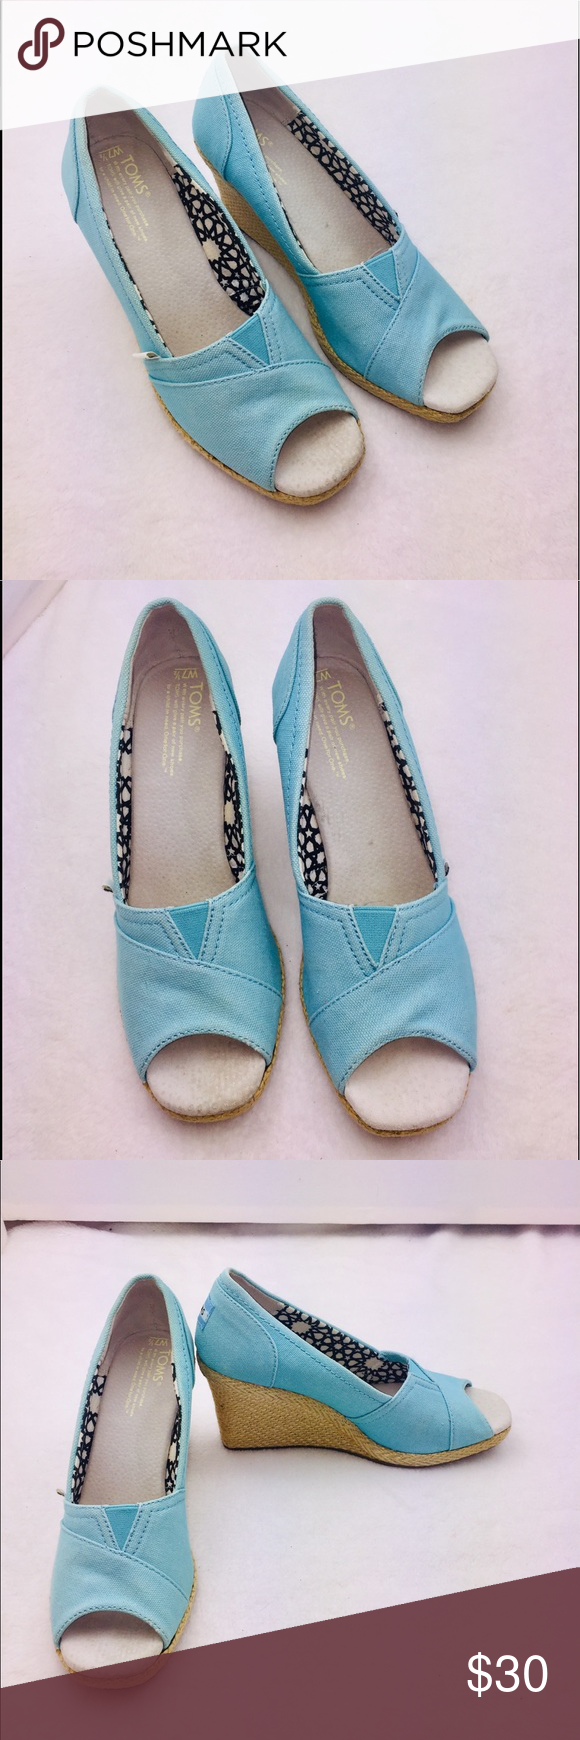 Toms Wedges Toms Wedges  There is some wear see pictures above! Toms Shoes Wedges #tomwedges Toms Wedges Toms Wedges  There is some wear see pictures above! Toms Shoes Wedges #tomwedges Toms Wedges Toms Wedges  There is some wear see pictures above! Toms Shoes Wedges #tomwedges Toms Wedges Toms Wedges  There is some wear see pictures above! Toms Shoes Wedges #tomwedges Toms Wedges Toms Wedges  There is some wear see pictures above! Toms Shoes Wedges #tomwedges Toms Wedges Toms Wedges  There is s #tomwedges